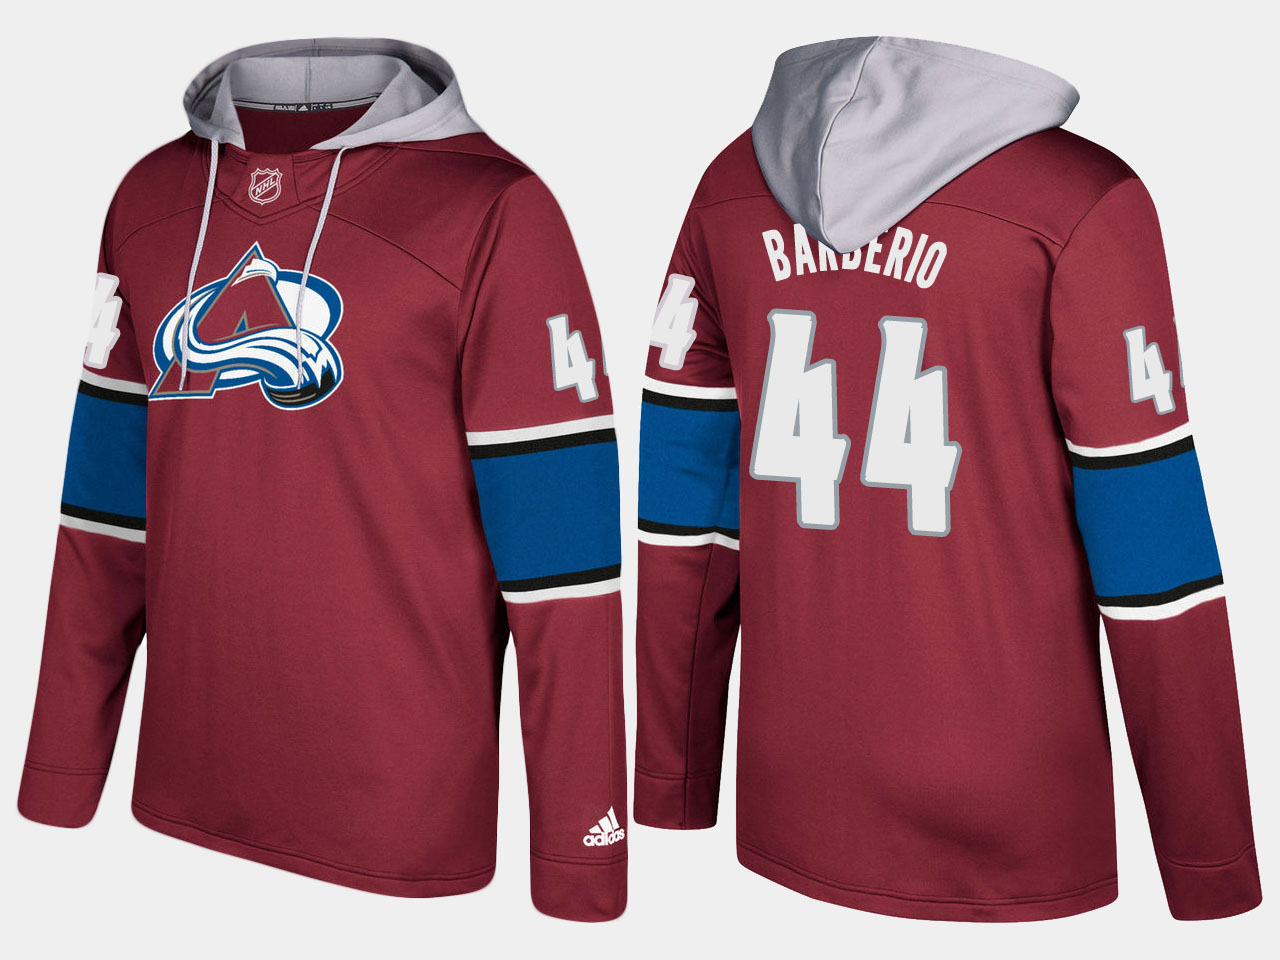 Men NHL Colorado avalanche 44 mark barberio burgundy hoodie